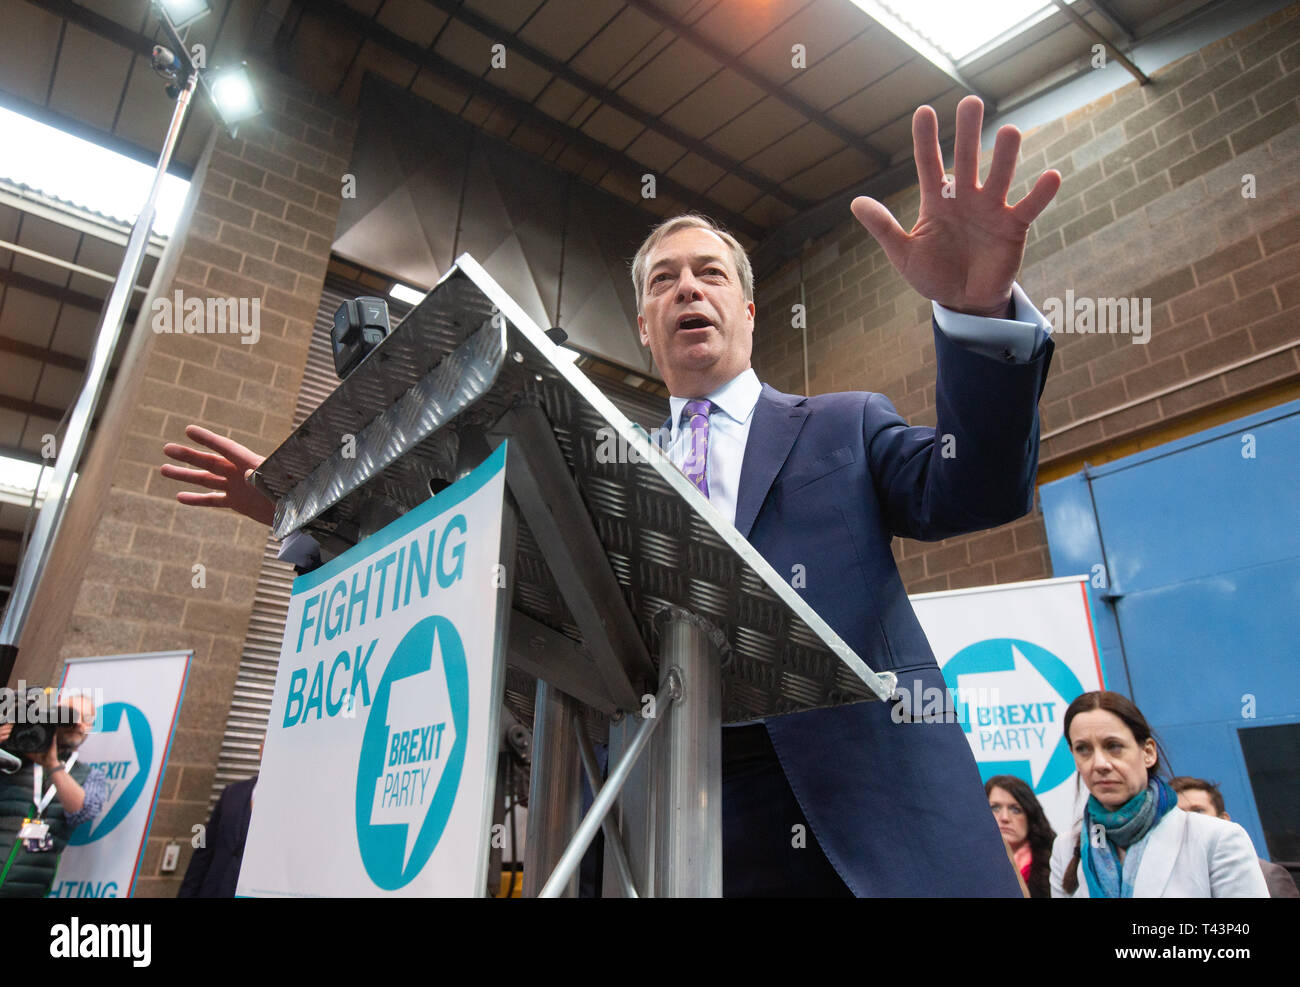 Nigel Farage, Party Leader of the newly-Formed Brexit Party, officially launches the Party at a metal factory in Coventry. Stock Photo